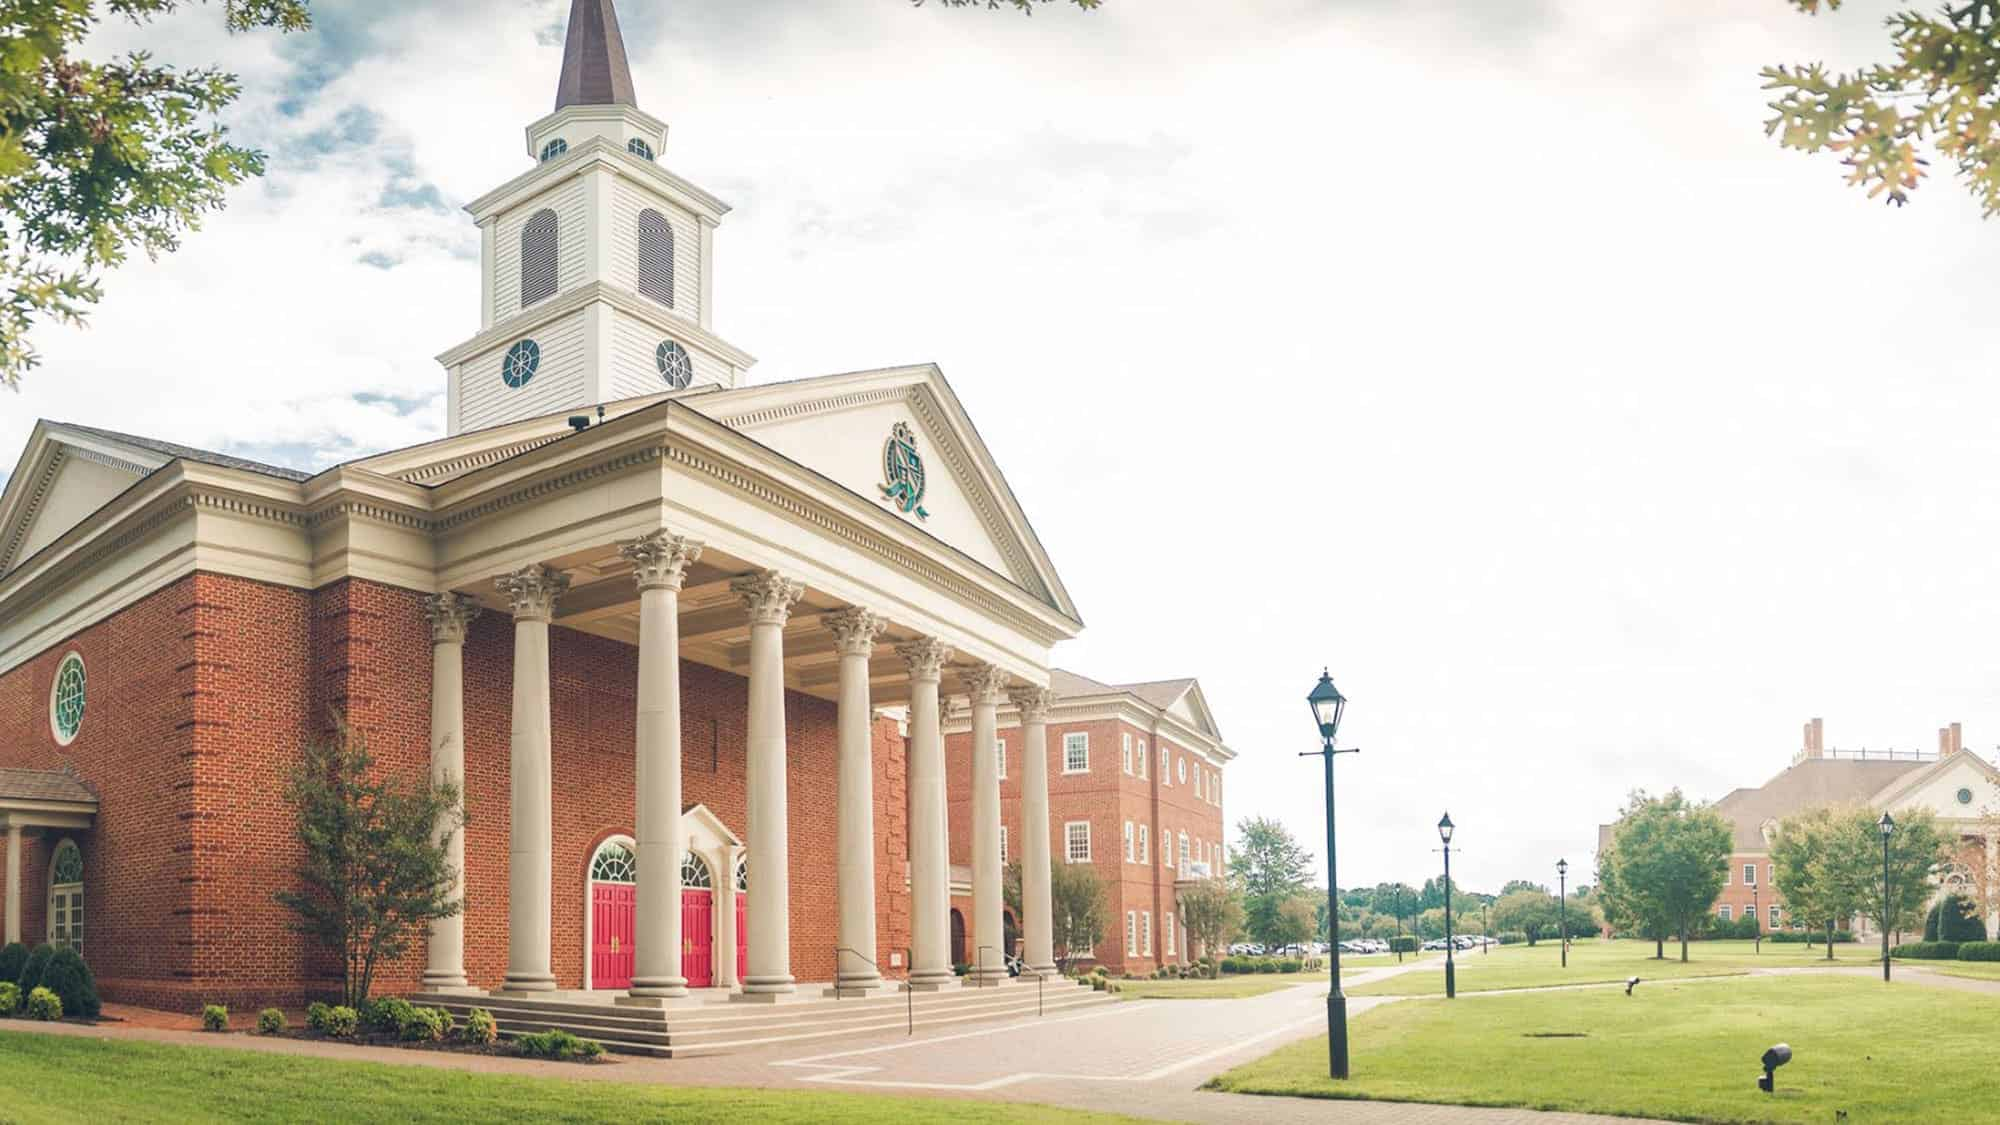 Regent University's chapel and divinity school in Virginia Beach, VA 23464.